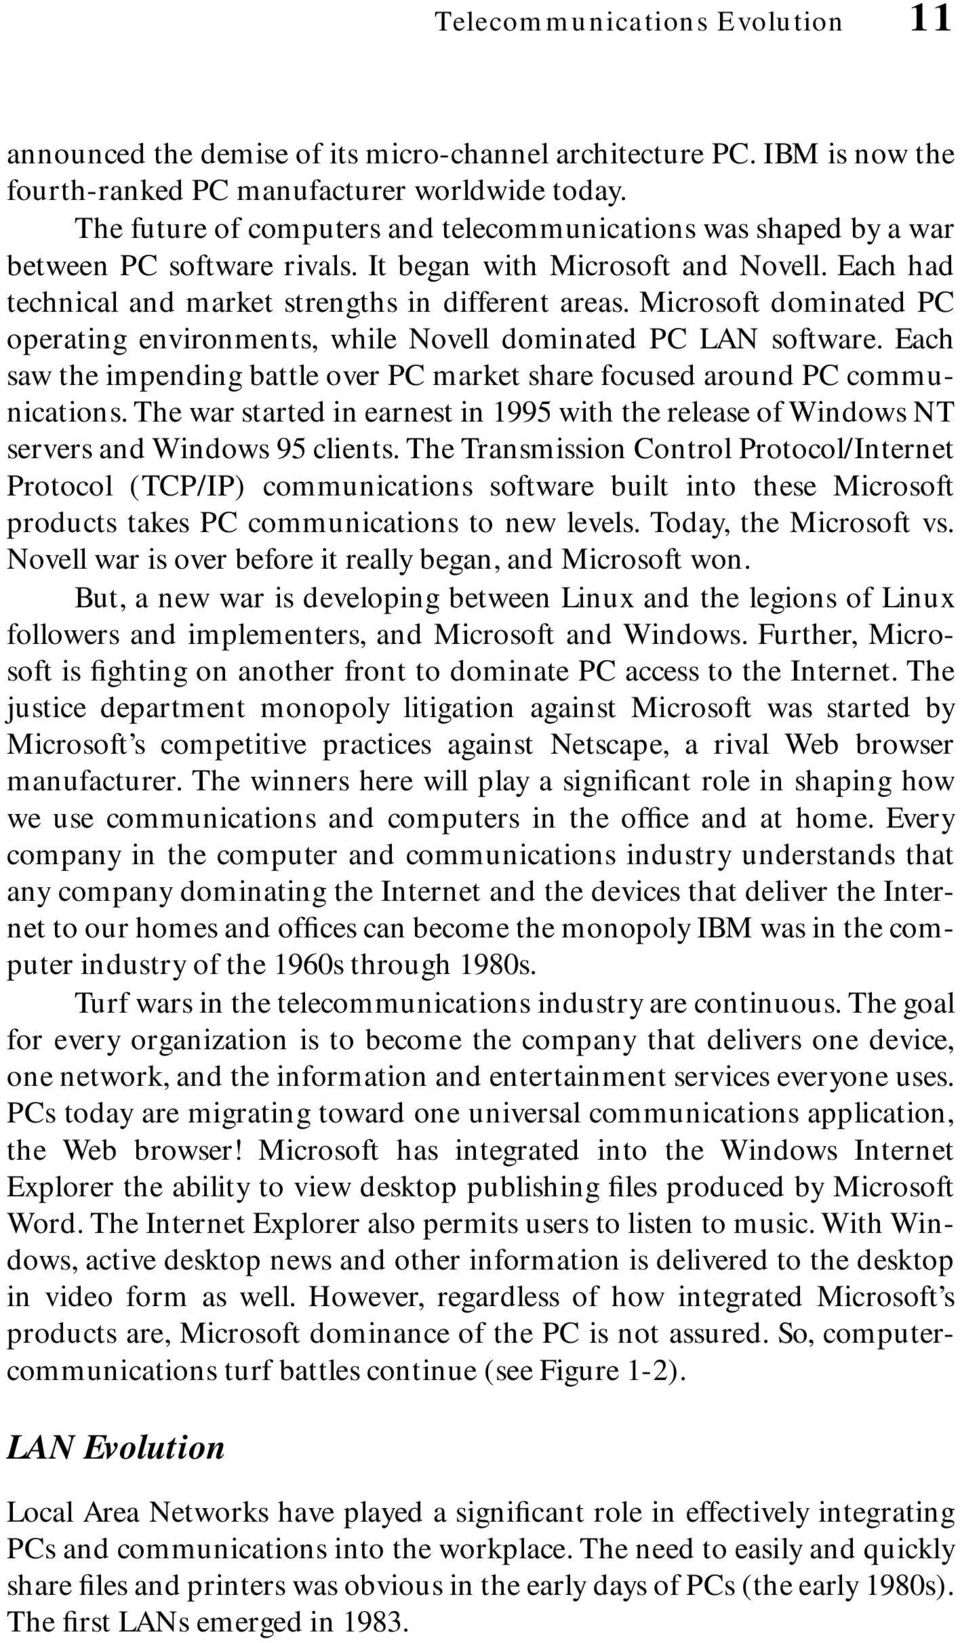 Microsoft dominated PC operating environments, while Novell dominated PC LAN software. Each saw the impending battle over PC market share focused around PC communications.